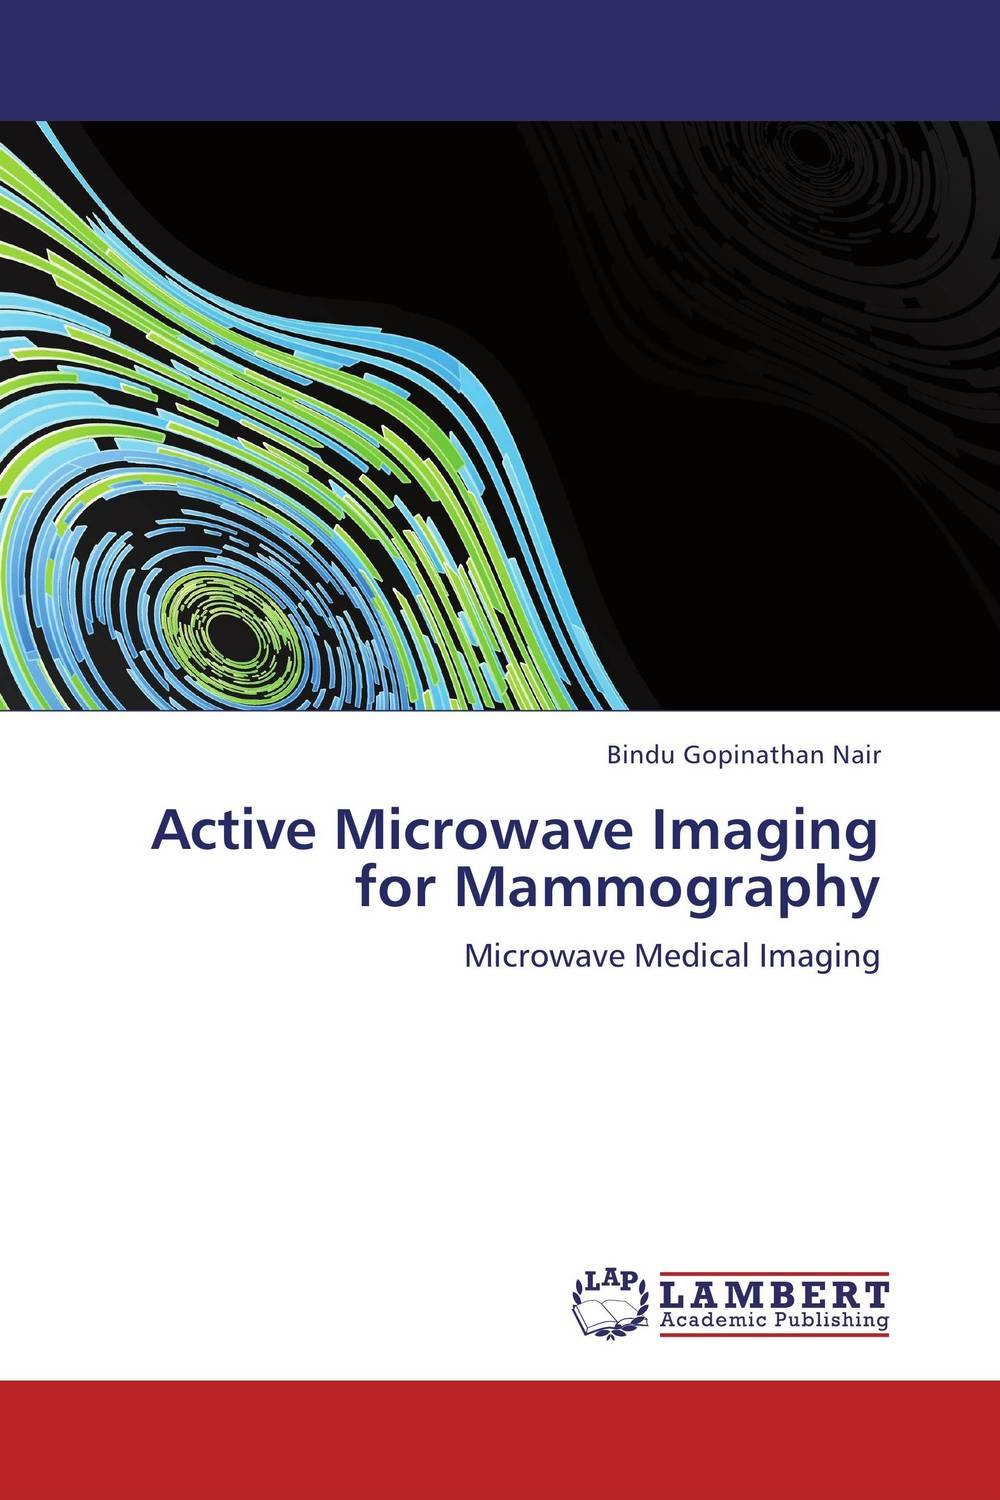 Active Microwave Imaging for Mammography breast cancer detection device for the breast cancer awareness and detections of breast cancer